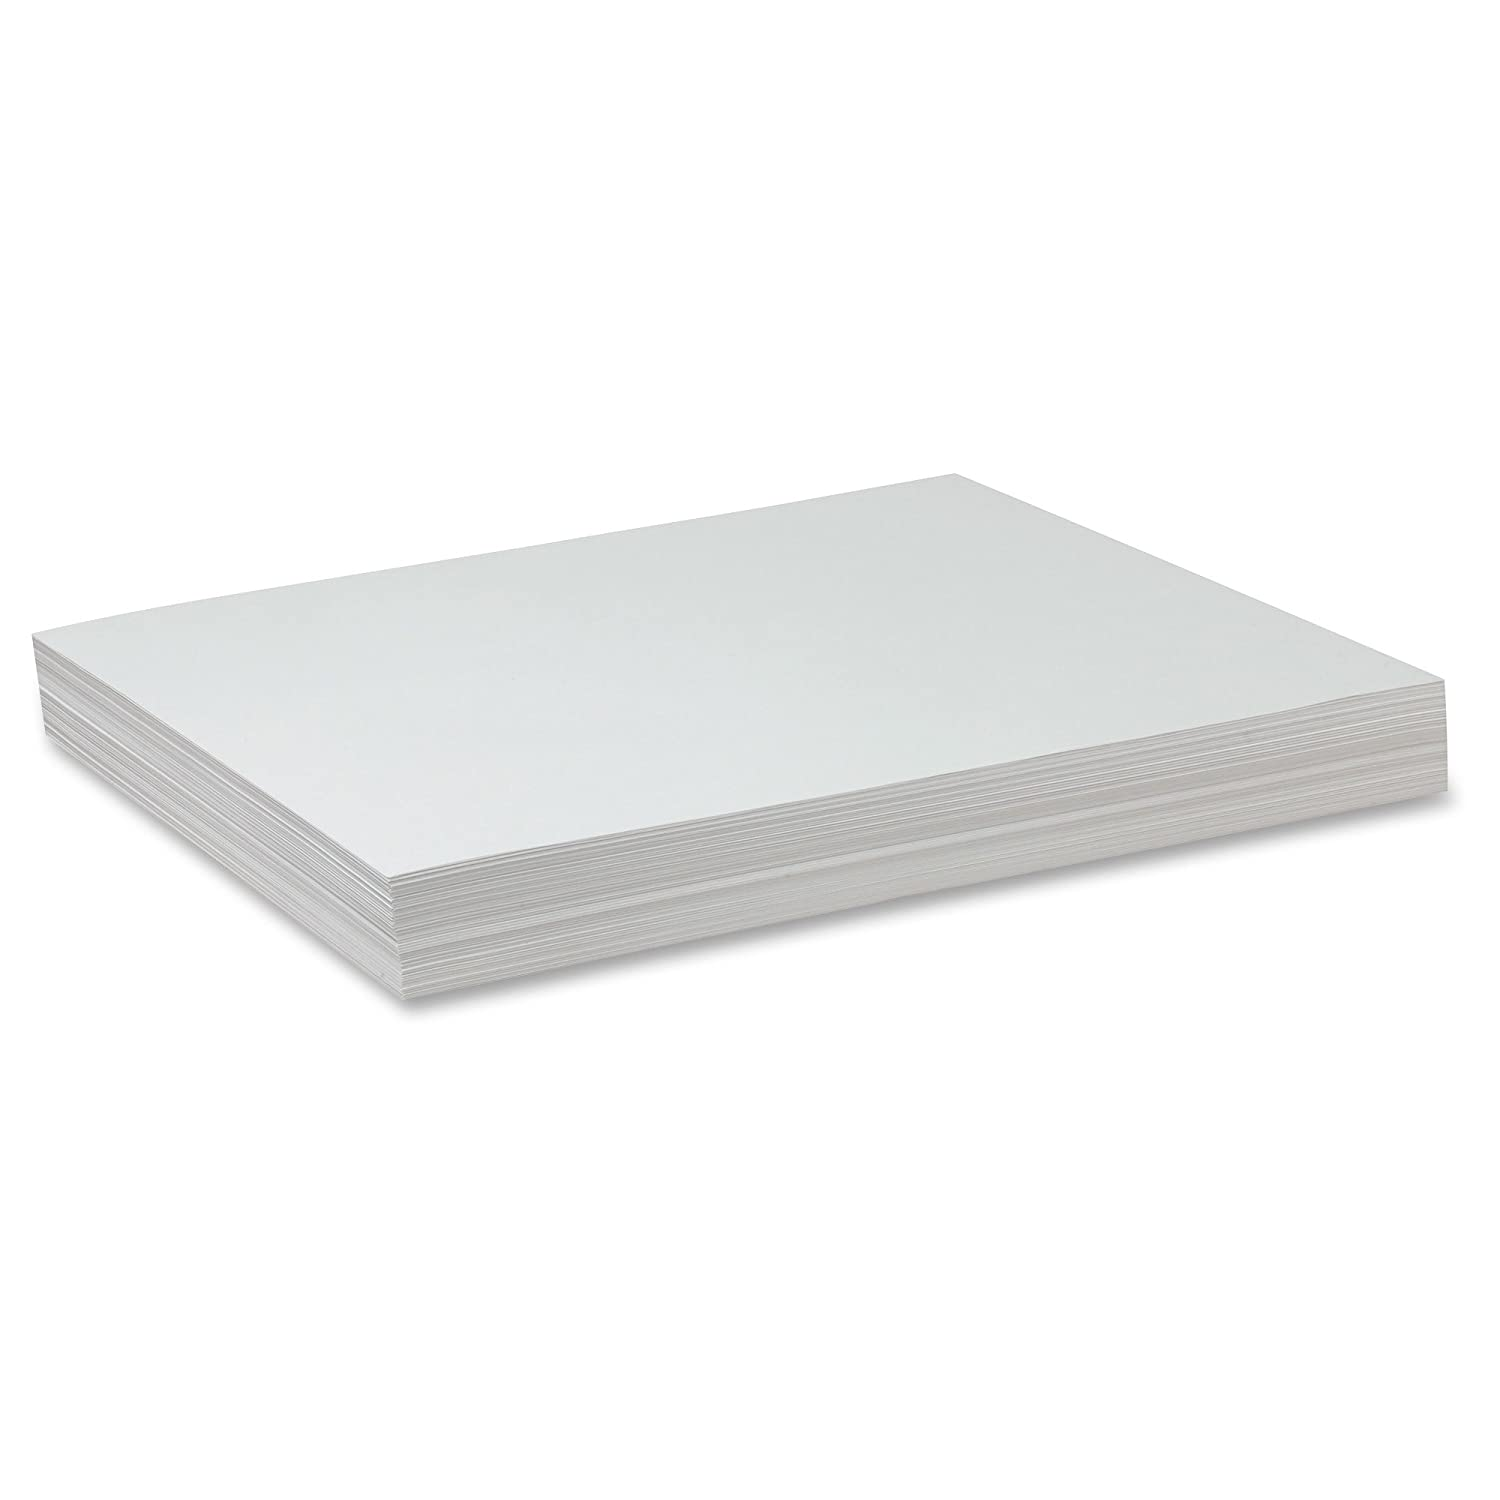 Amazoncom Pacon White Drawing Paper Standard Weight 18 X 24